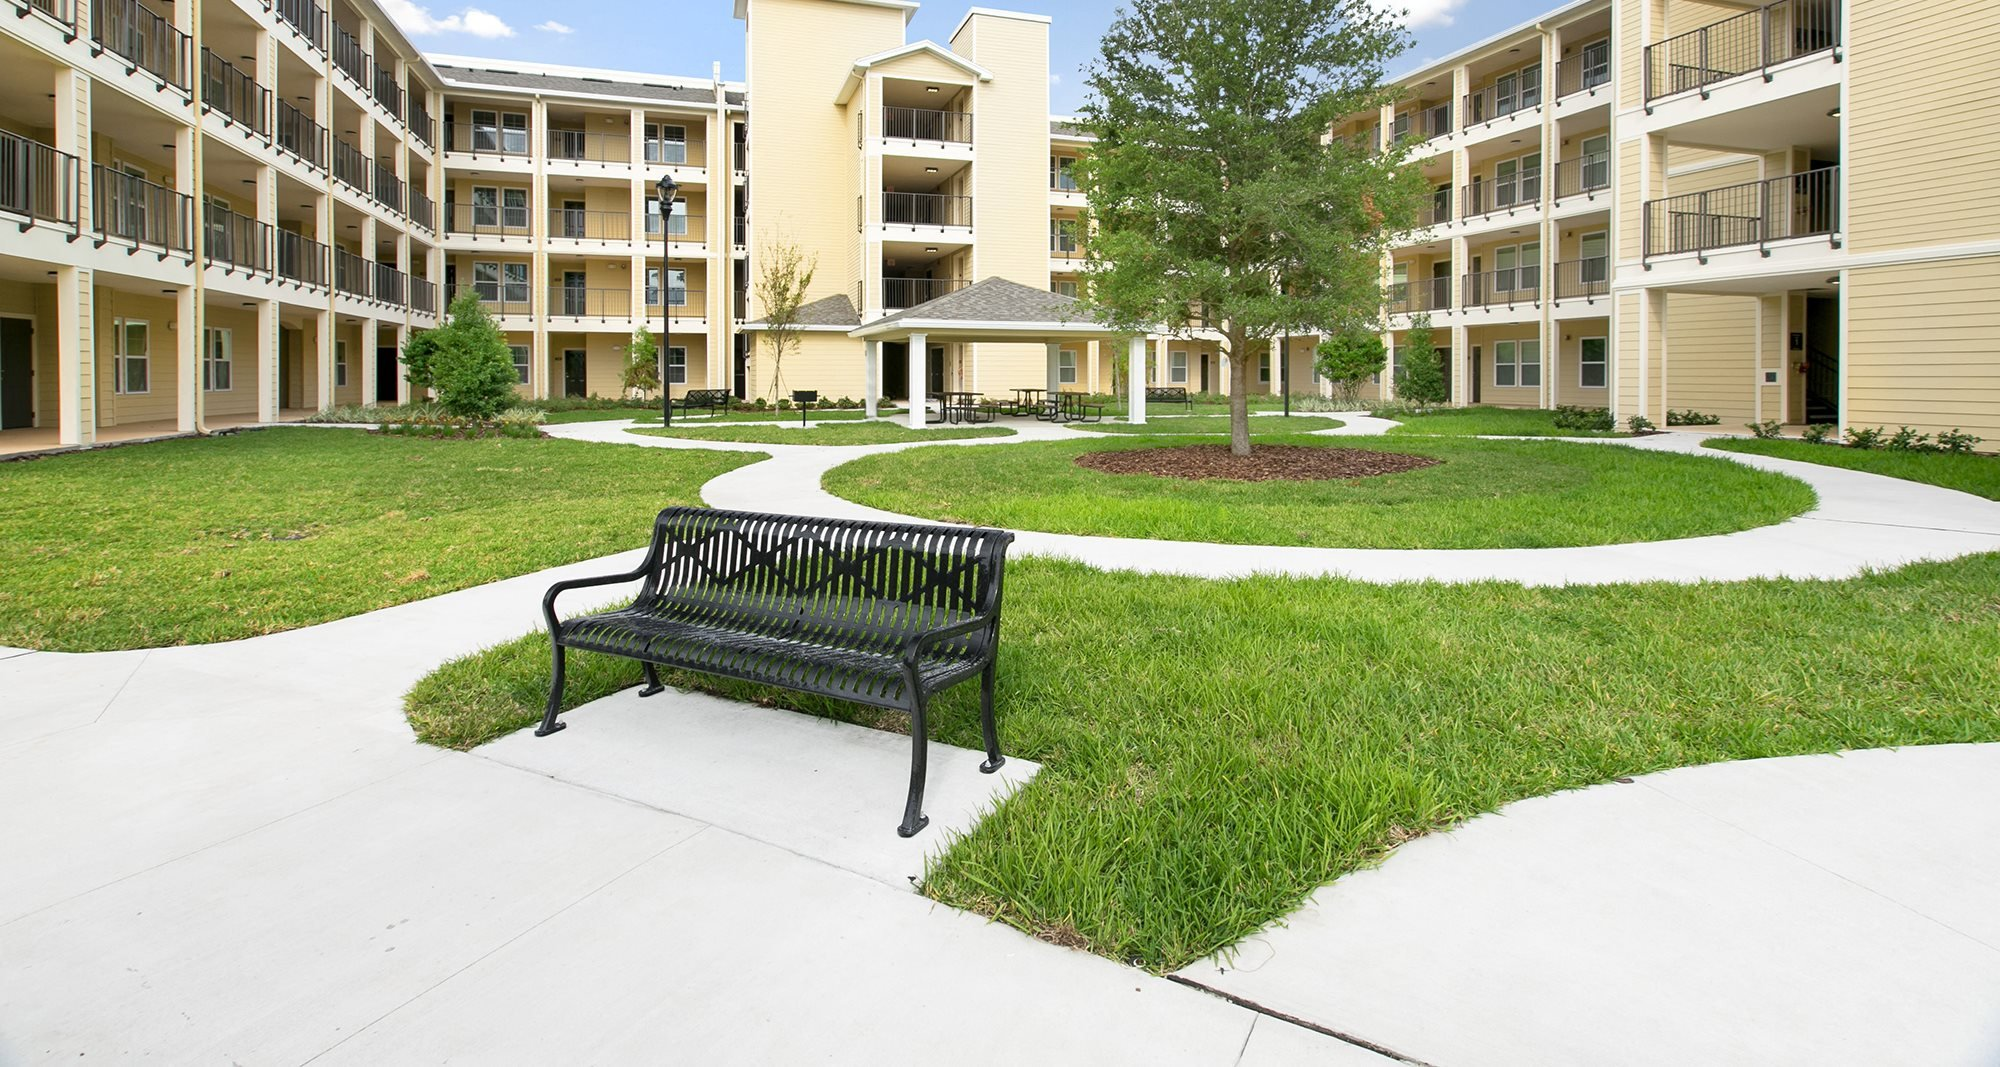 Senior Apartments In Fern Park Fl Garden Park Senior Living Concord Rents Concord Management Concordrents Com